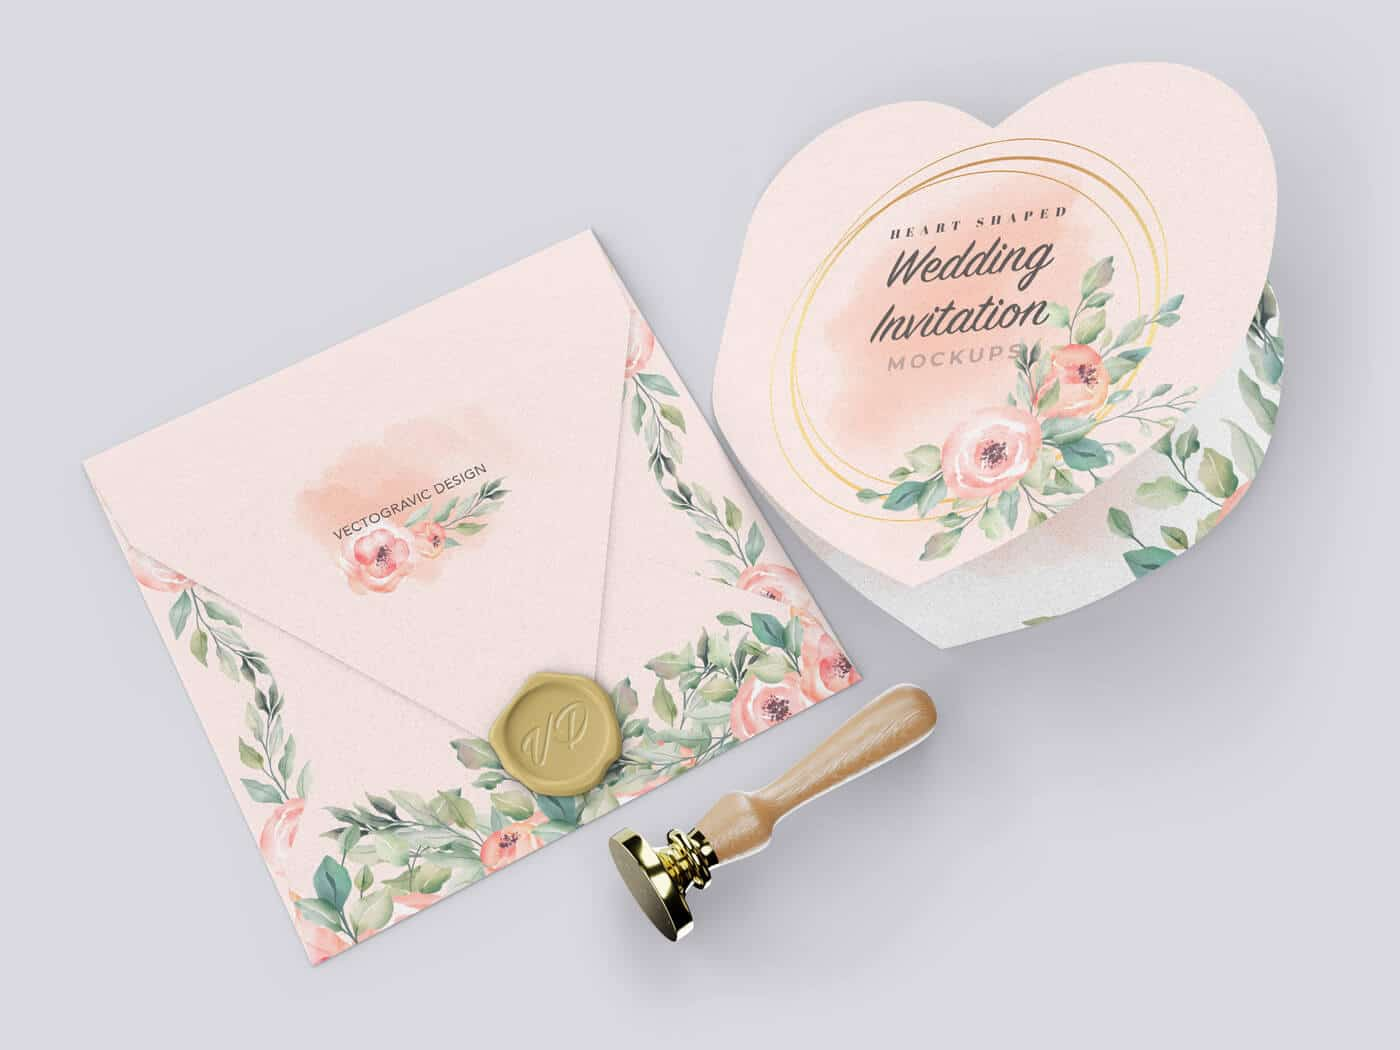 Heart Shaped Invitation Mockup 01